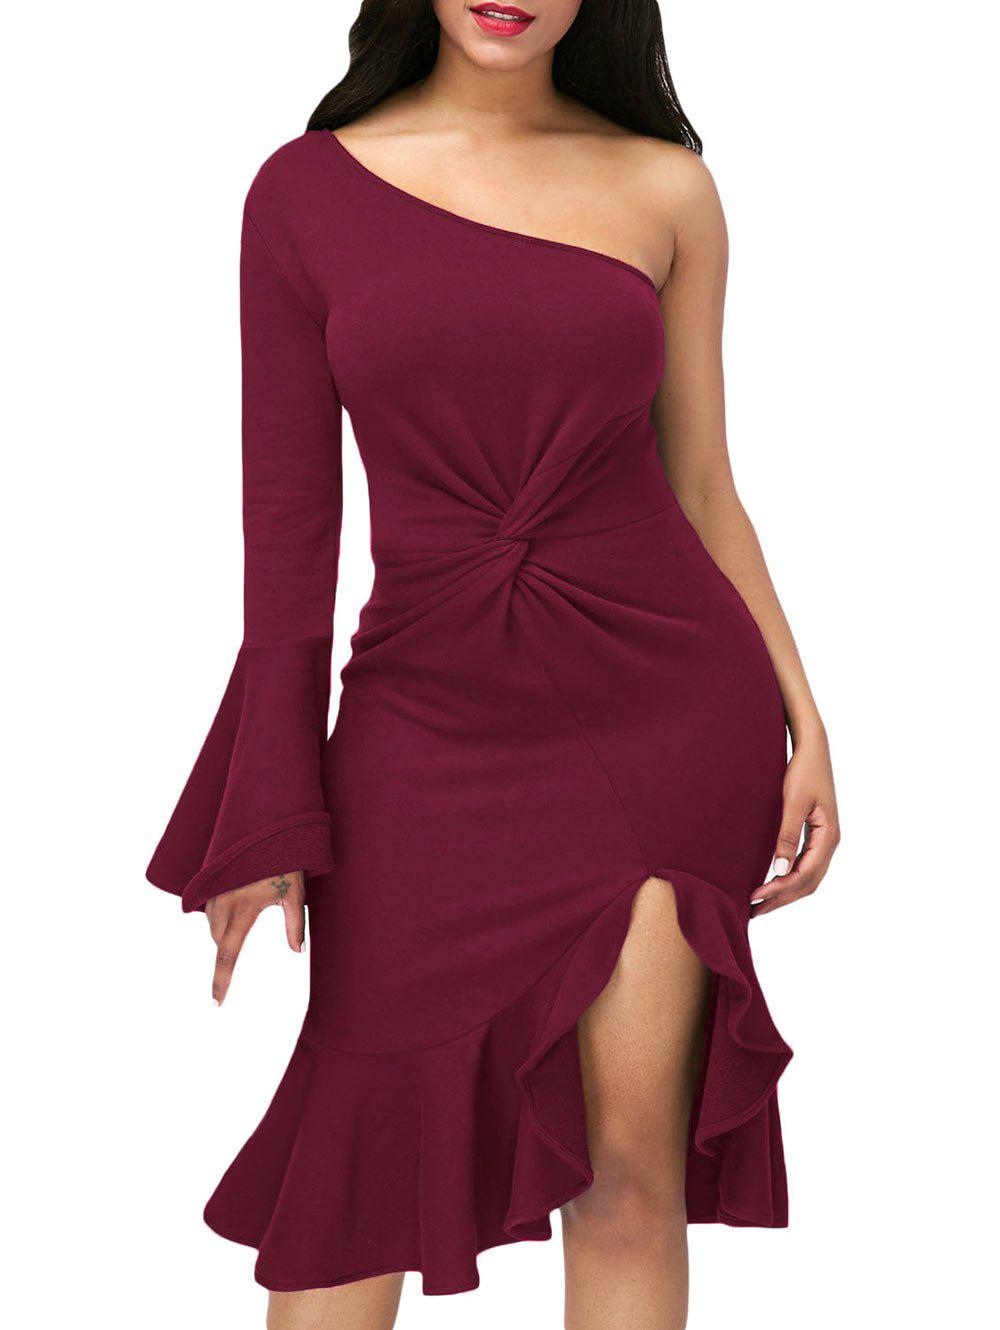 Twist Front One Shoulder Cocktail Dress - Rouge vineux M